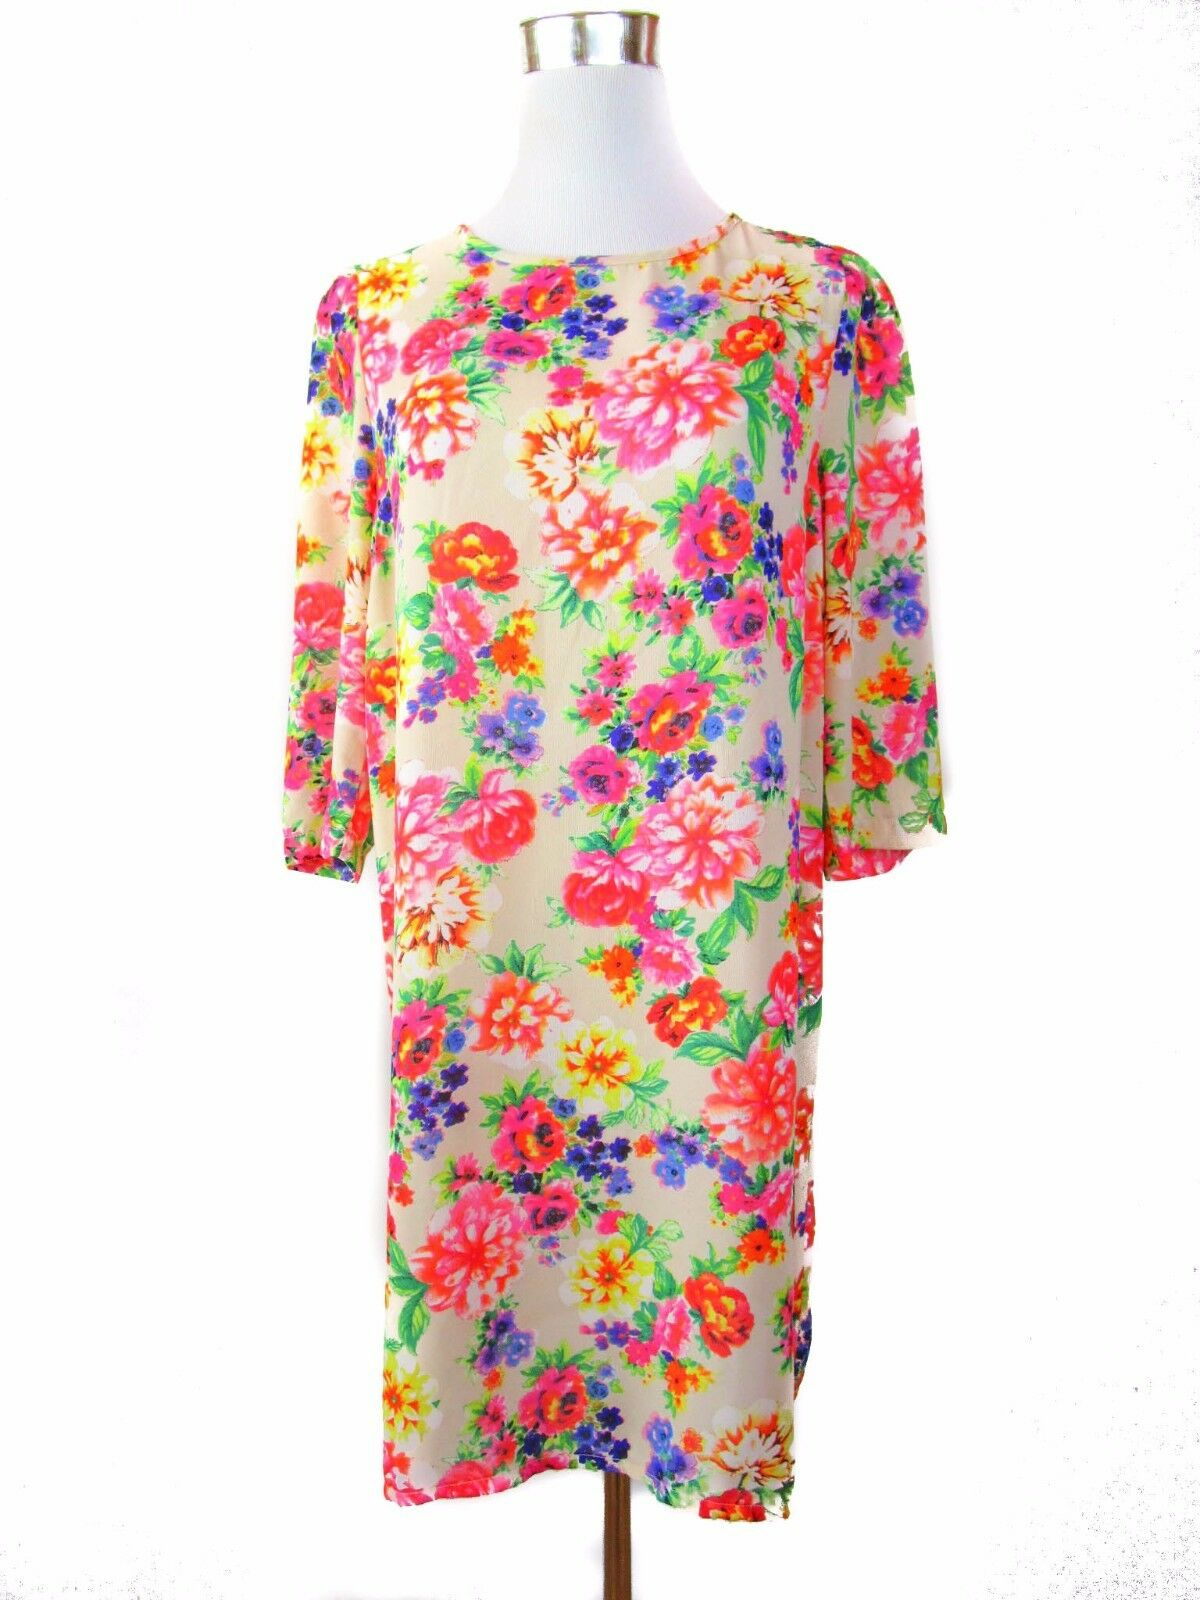 NEW LOOK Womens Vintage 60s Retro Style Floral 3 4 Sleeve Shift Dress sz M BB8